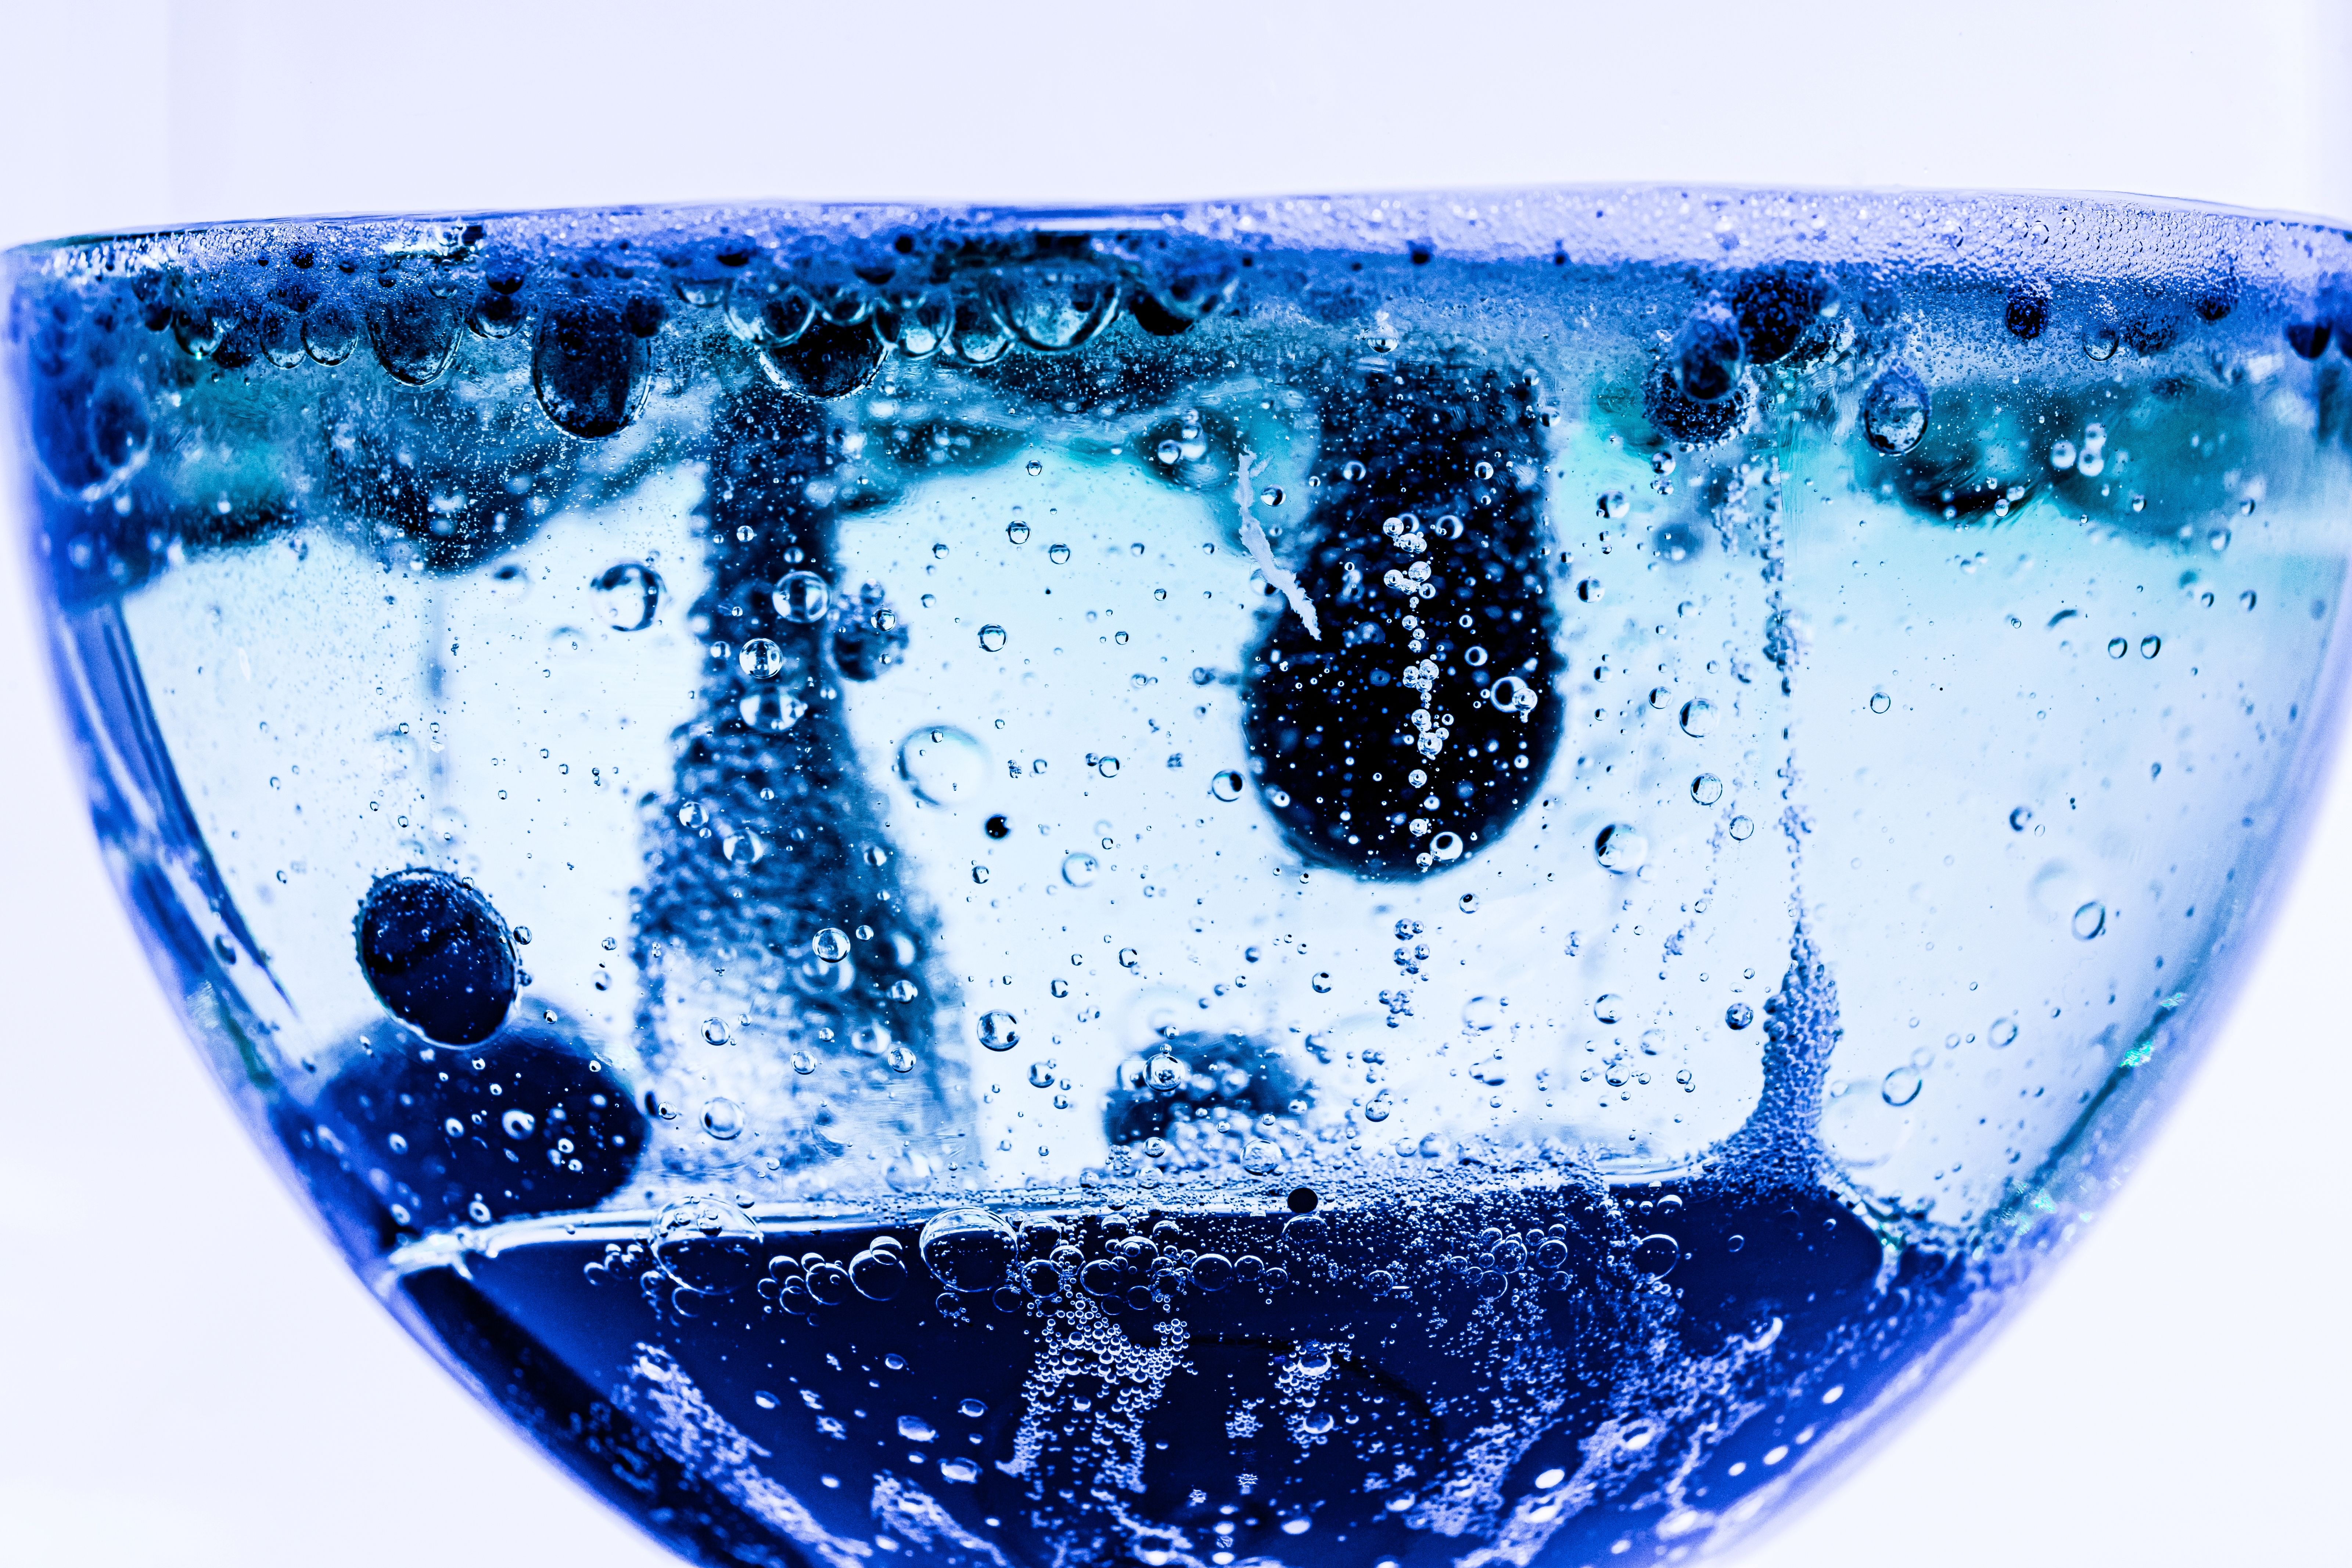 Glass cup with blue liquid and no with bubbles and ink